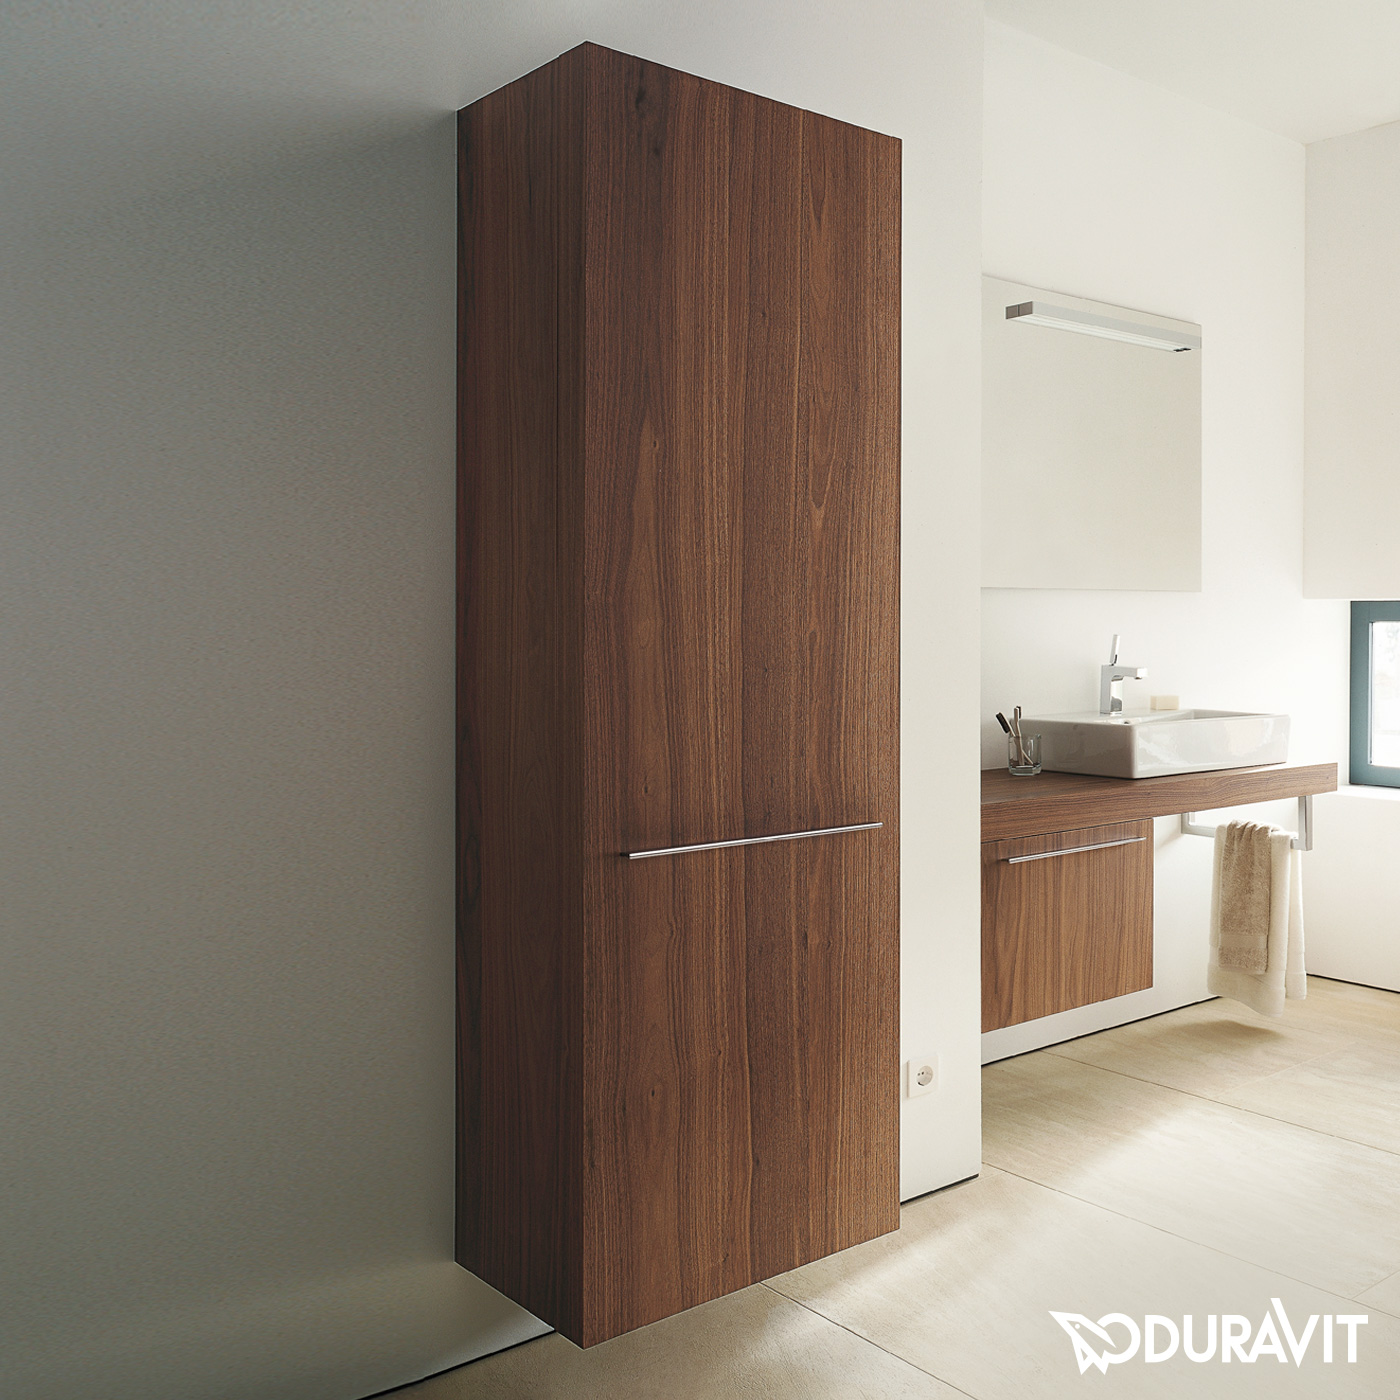 duravit fogo hochschrank amerikanischer nu baum. Black Bedroom Furniture Sets. Home Design Ideas